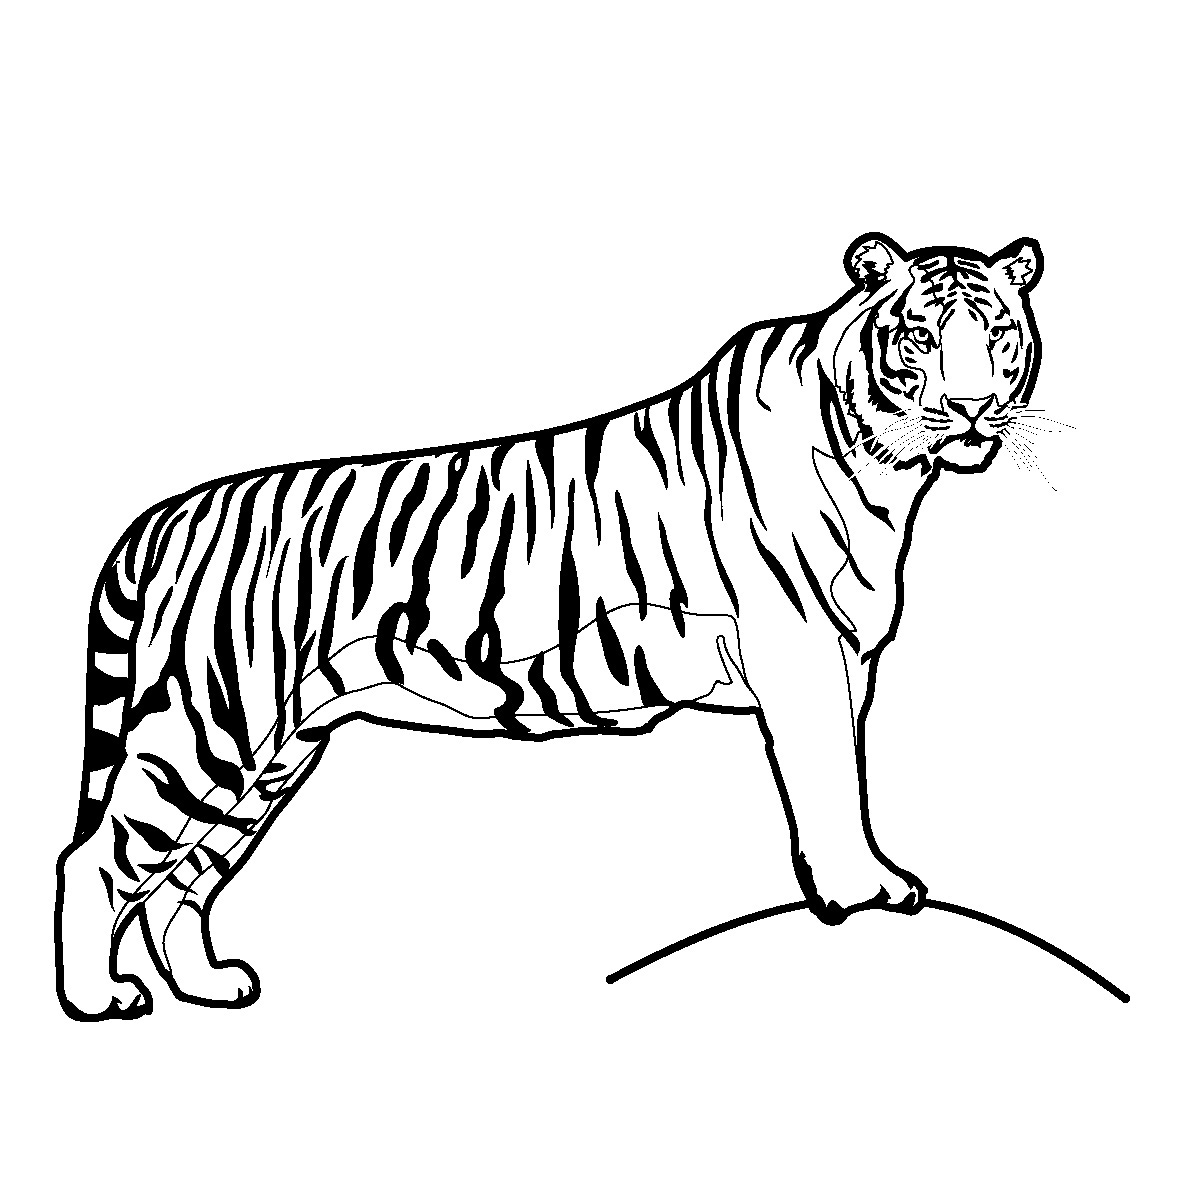 Tiger Clip Art Pictures Black And White | Clipart library - Free